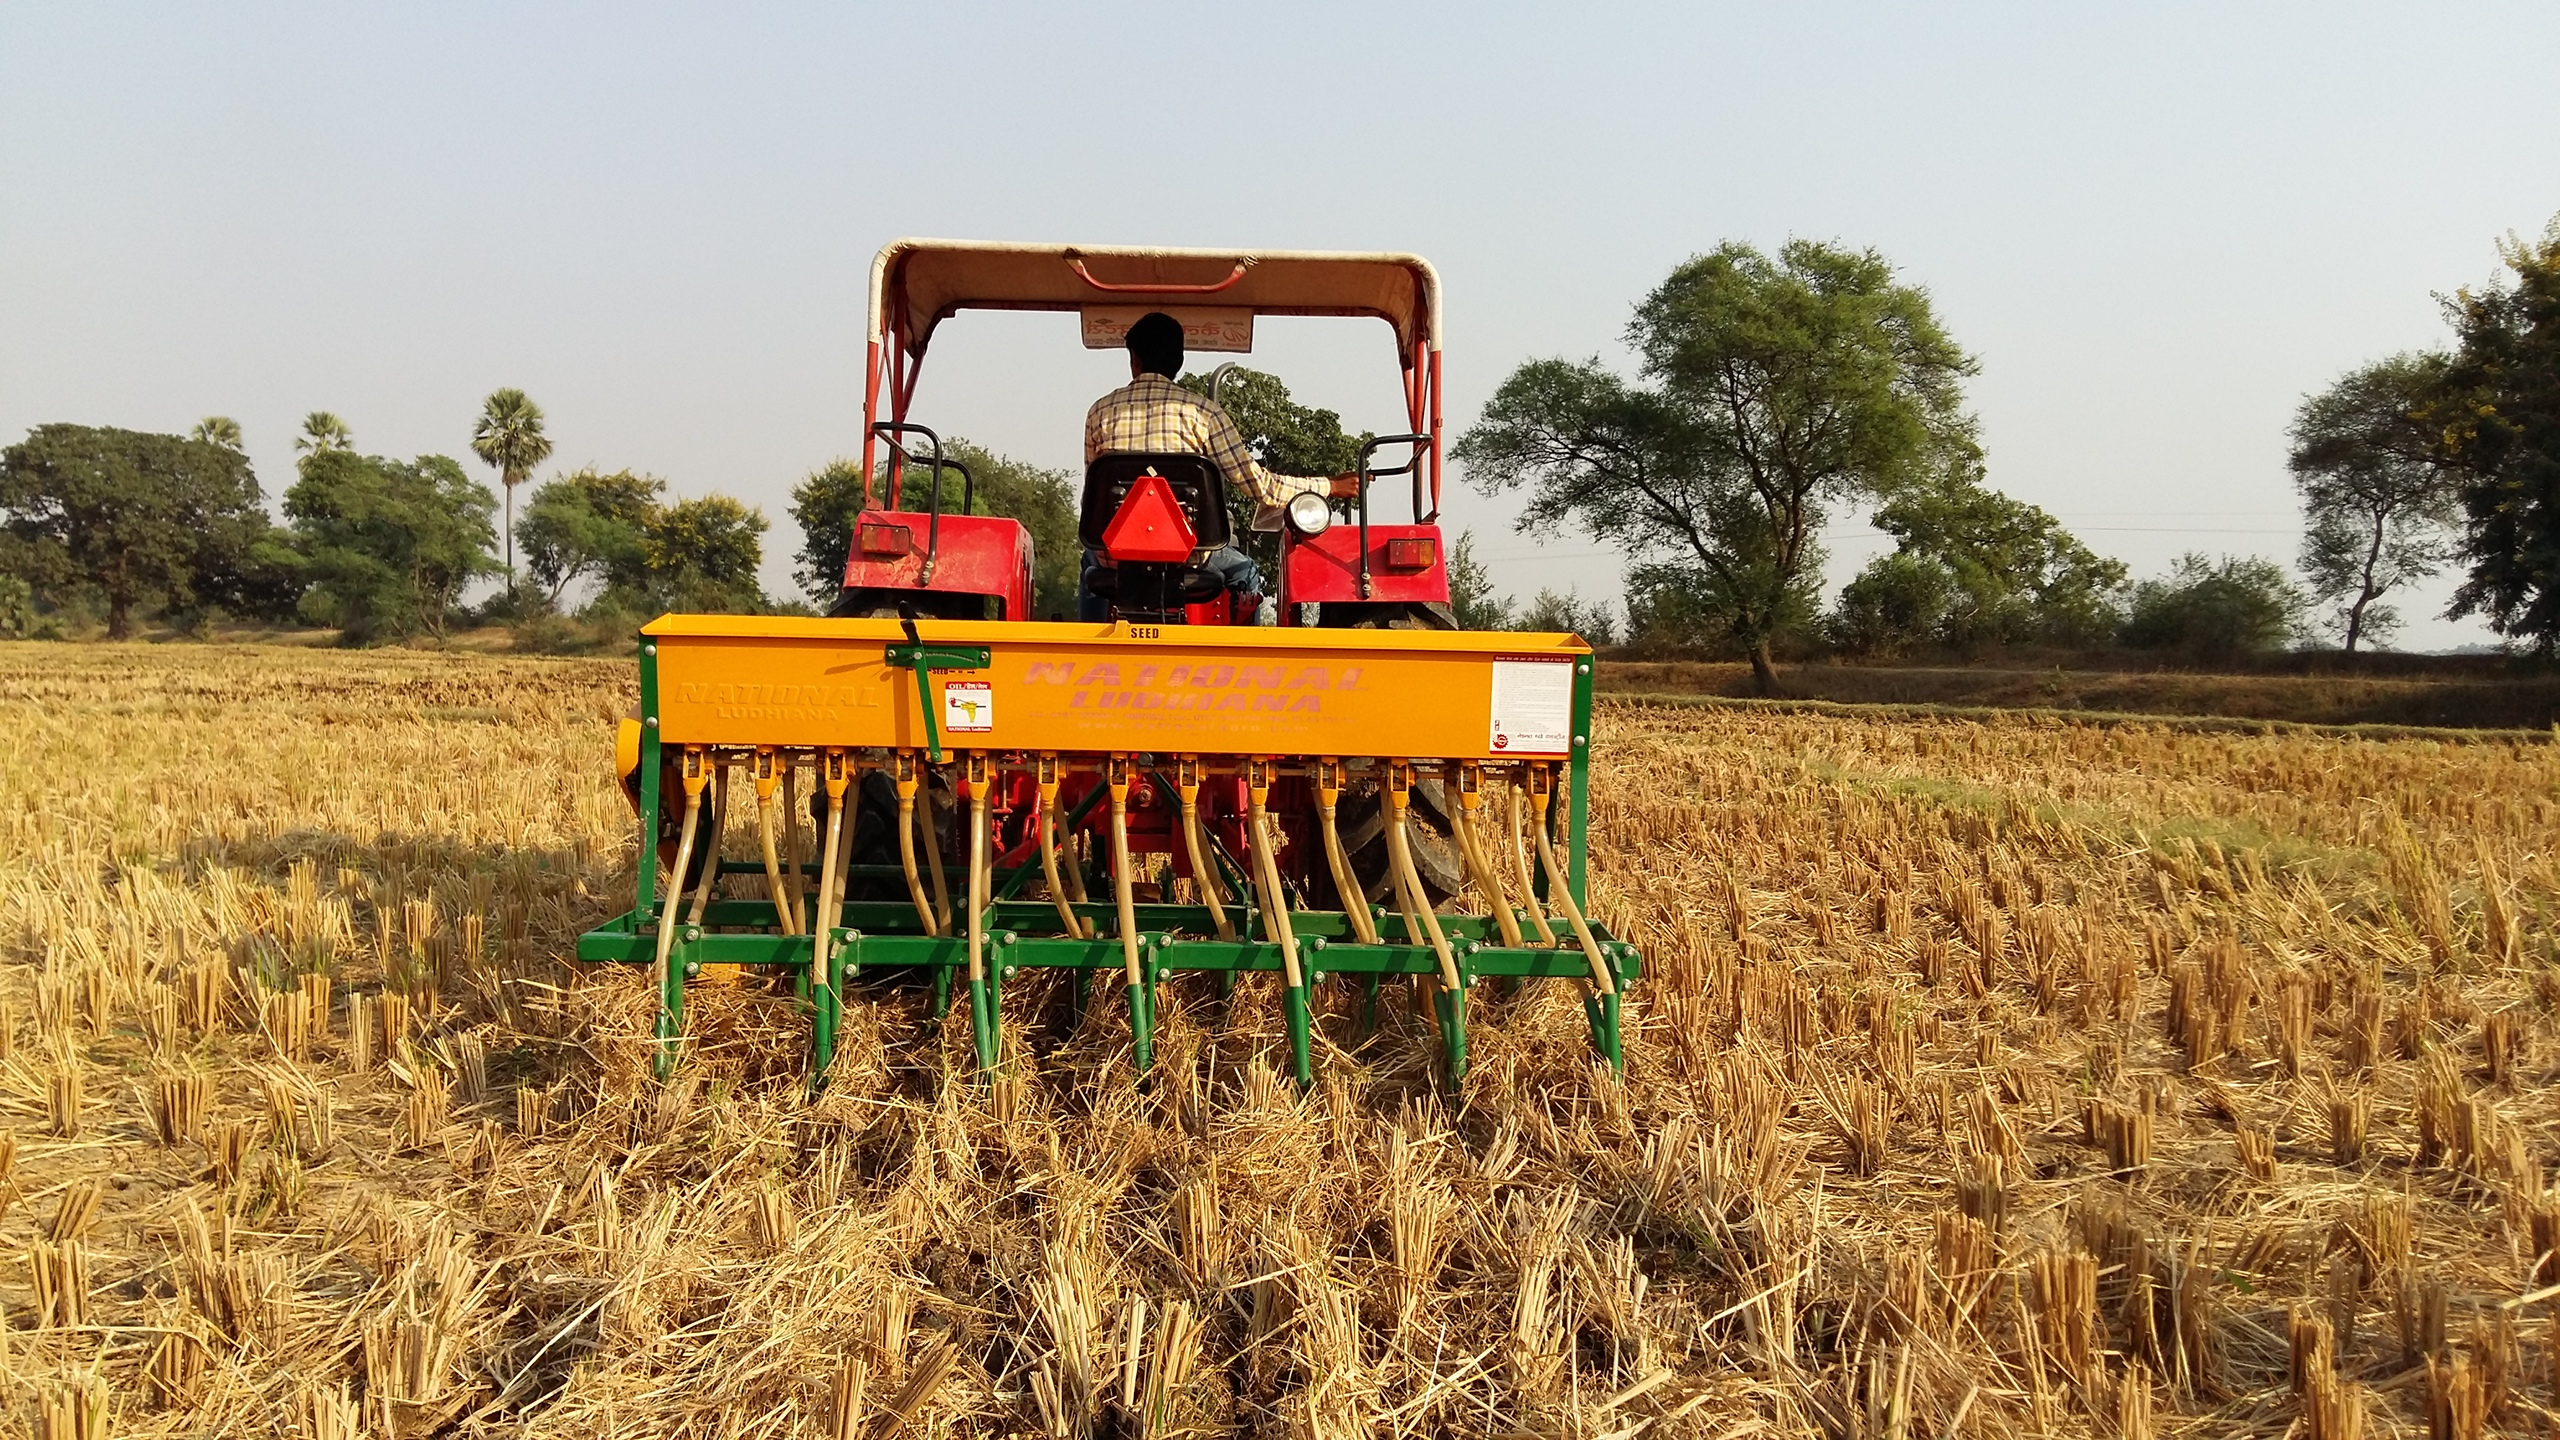 Zero tillage reverses the loss of soil organic matter that happens in conventional tillage. (Photo: Dakshinamurthy Vedachalam/CIMMYT)